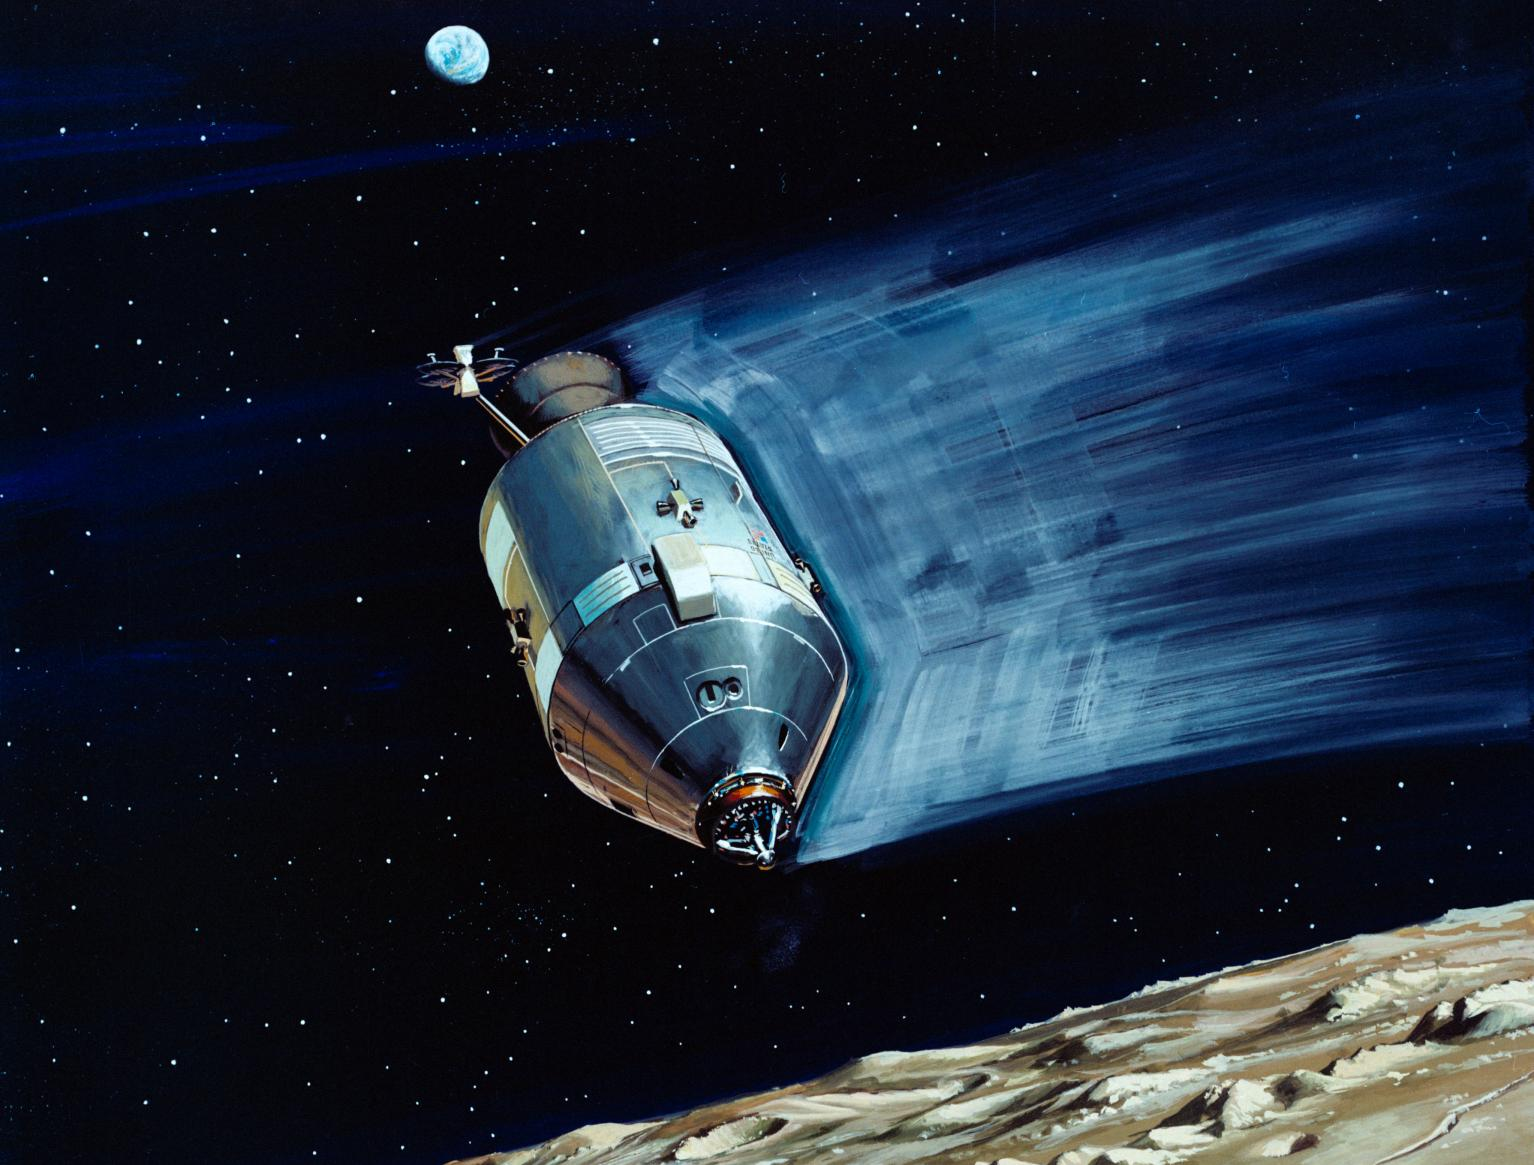 Illustration of the Apollo Mission Command Module